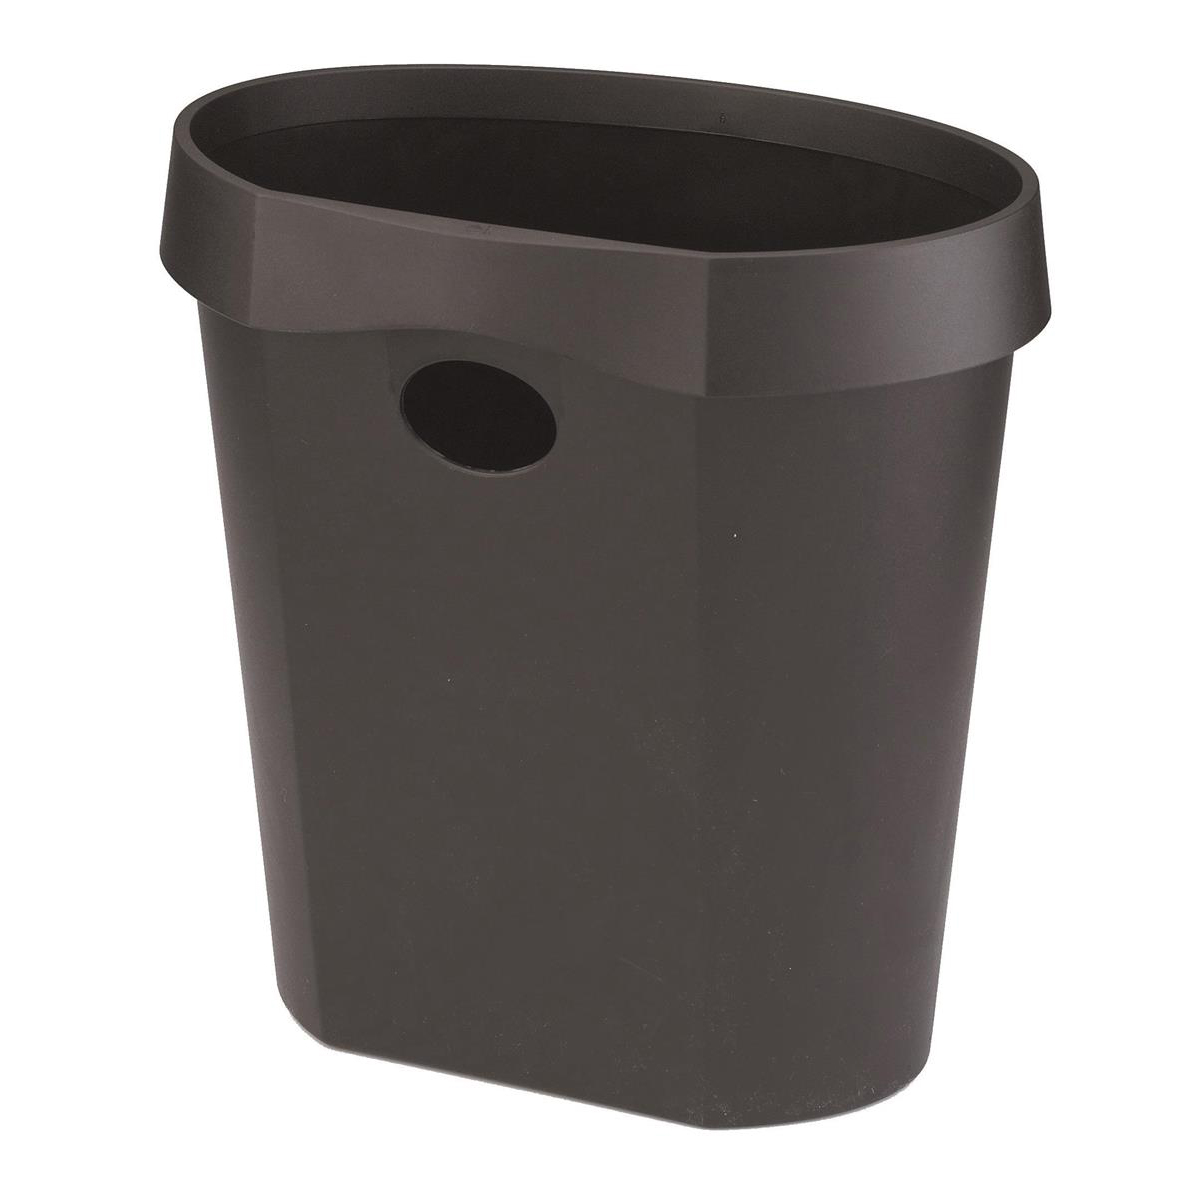 Rubbish Bins Avery DR500 Waste Bin with Rim Flat Back 18 Litres 350x250x340mm Black Ref DR500BLK